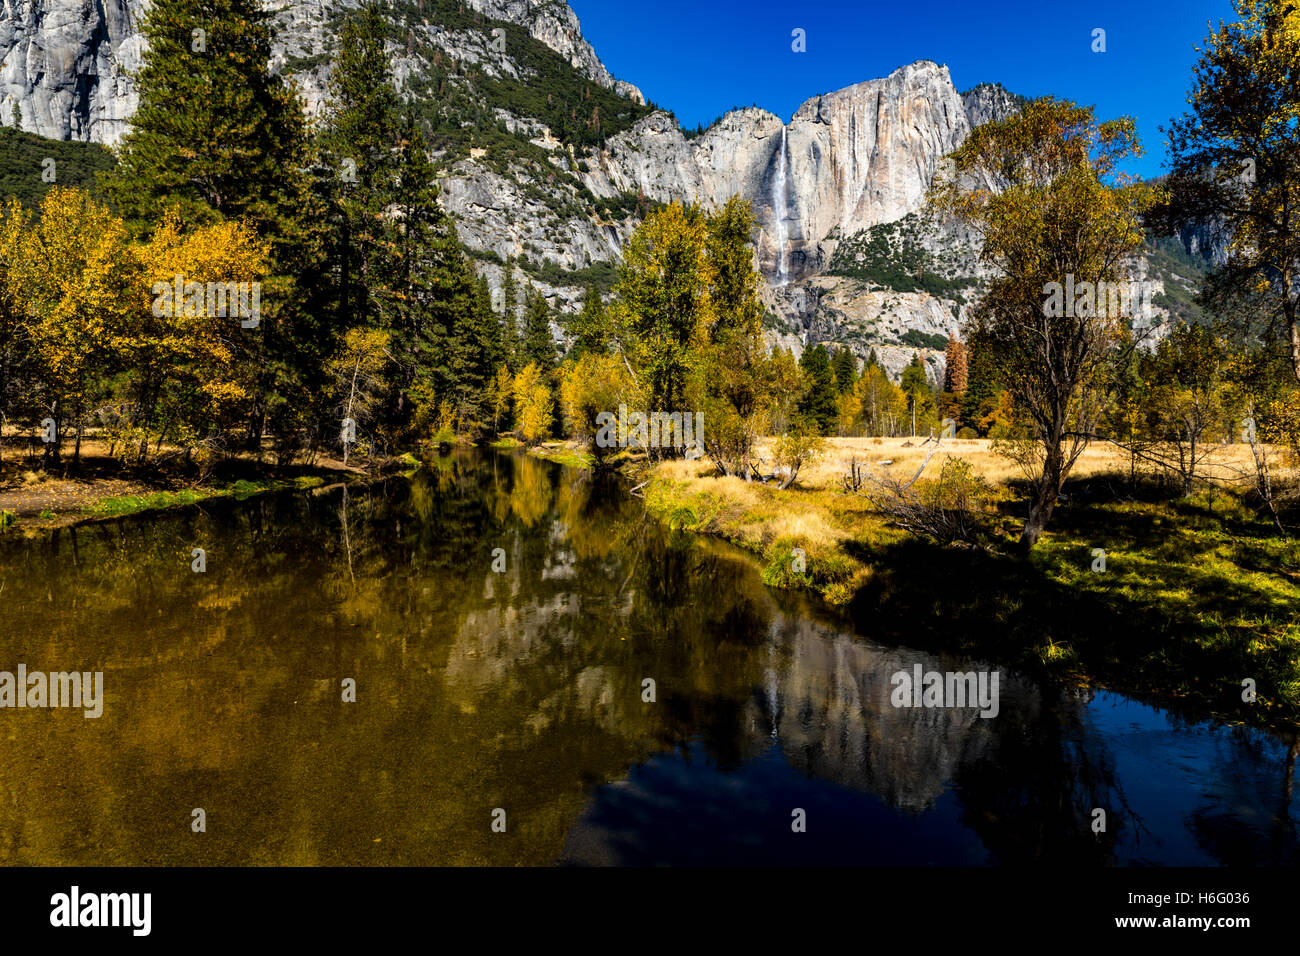 the-merced-river-and-horsetail-falls-yosemite-national-park-in-the-H6G036.jpg